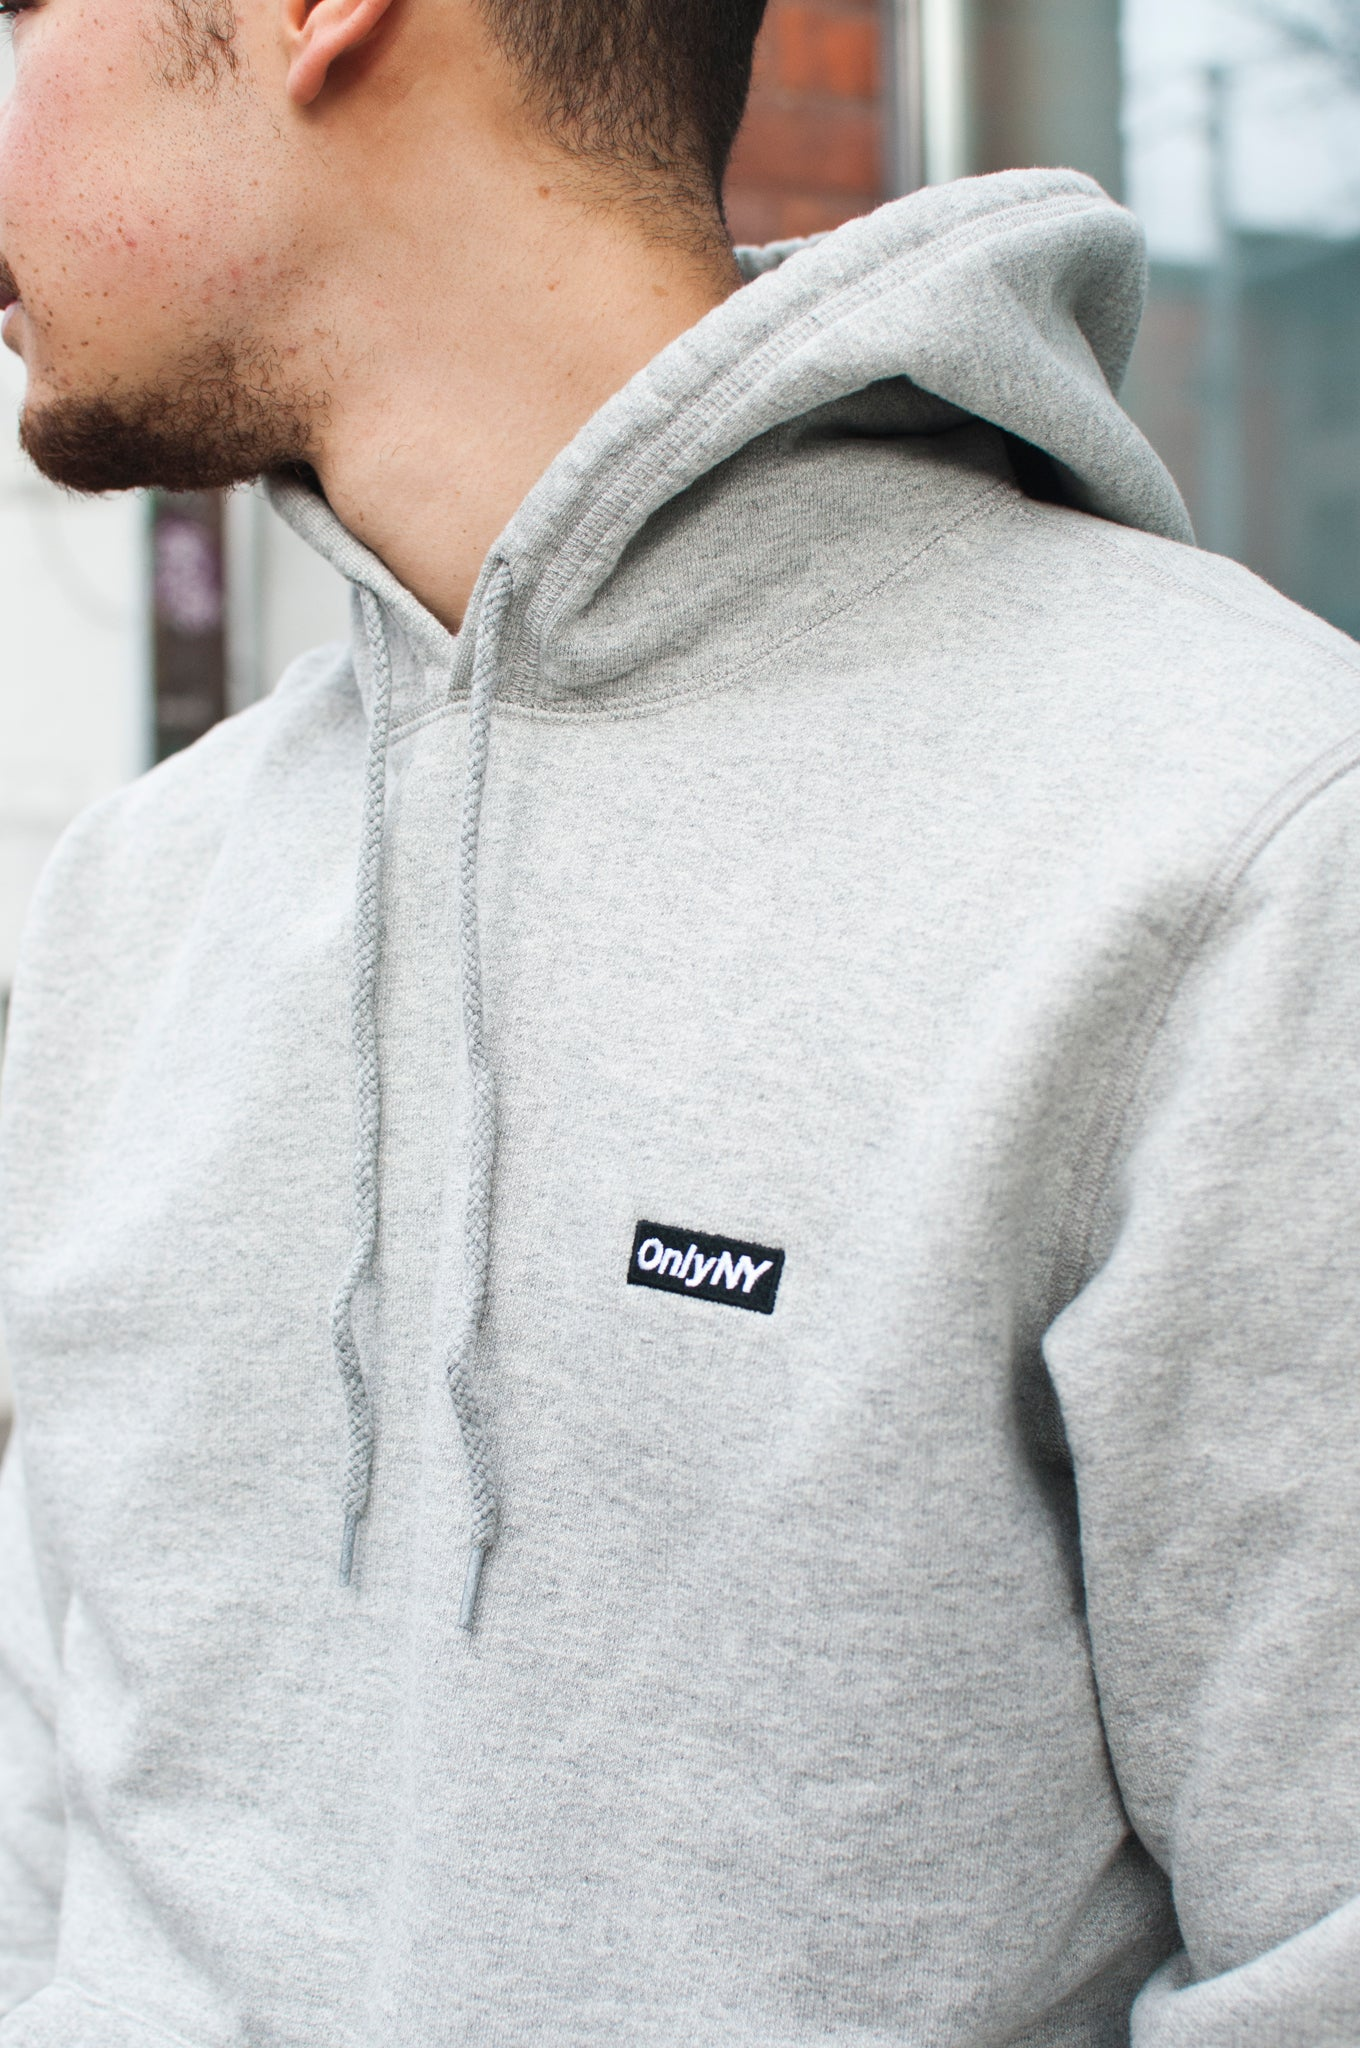 Only NY Block Logo Hoody Grey at shoplostfound, 2